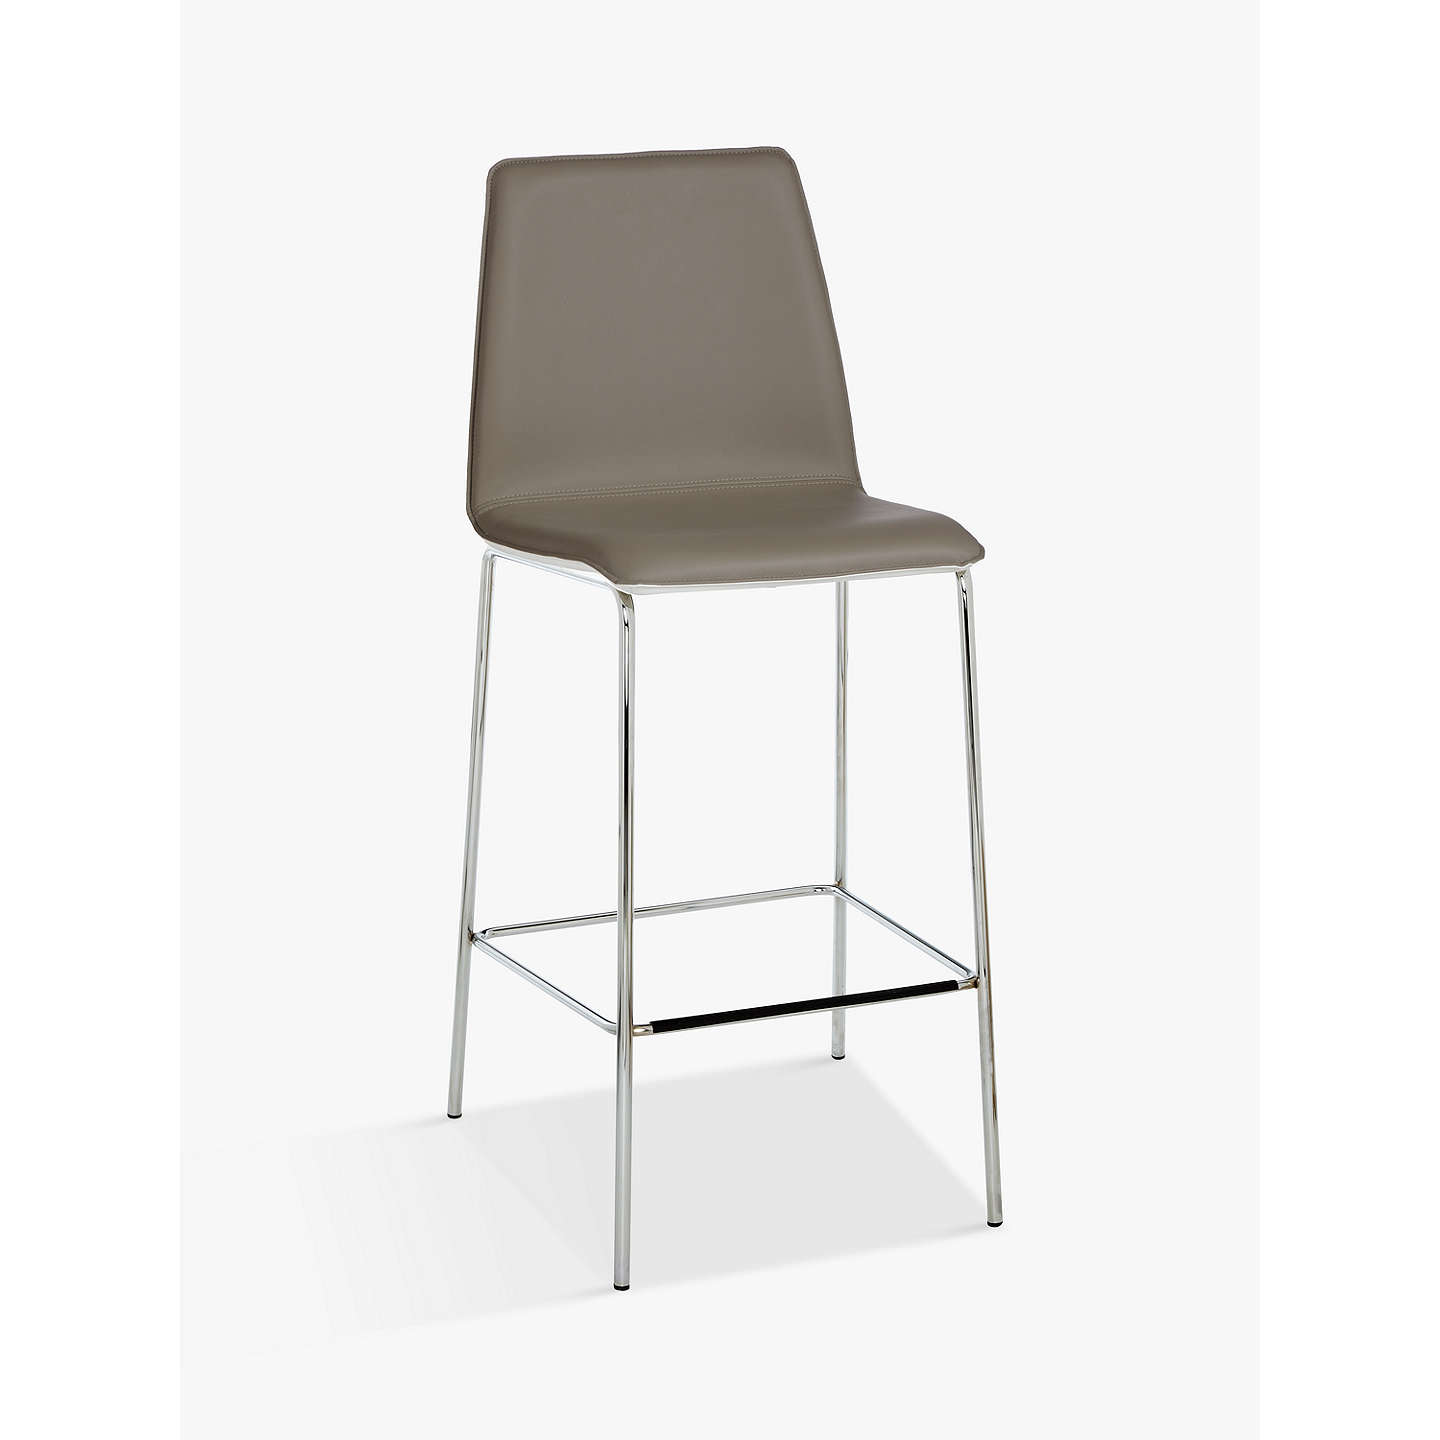 chair plus afteroom bar menu en shop furniture